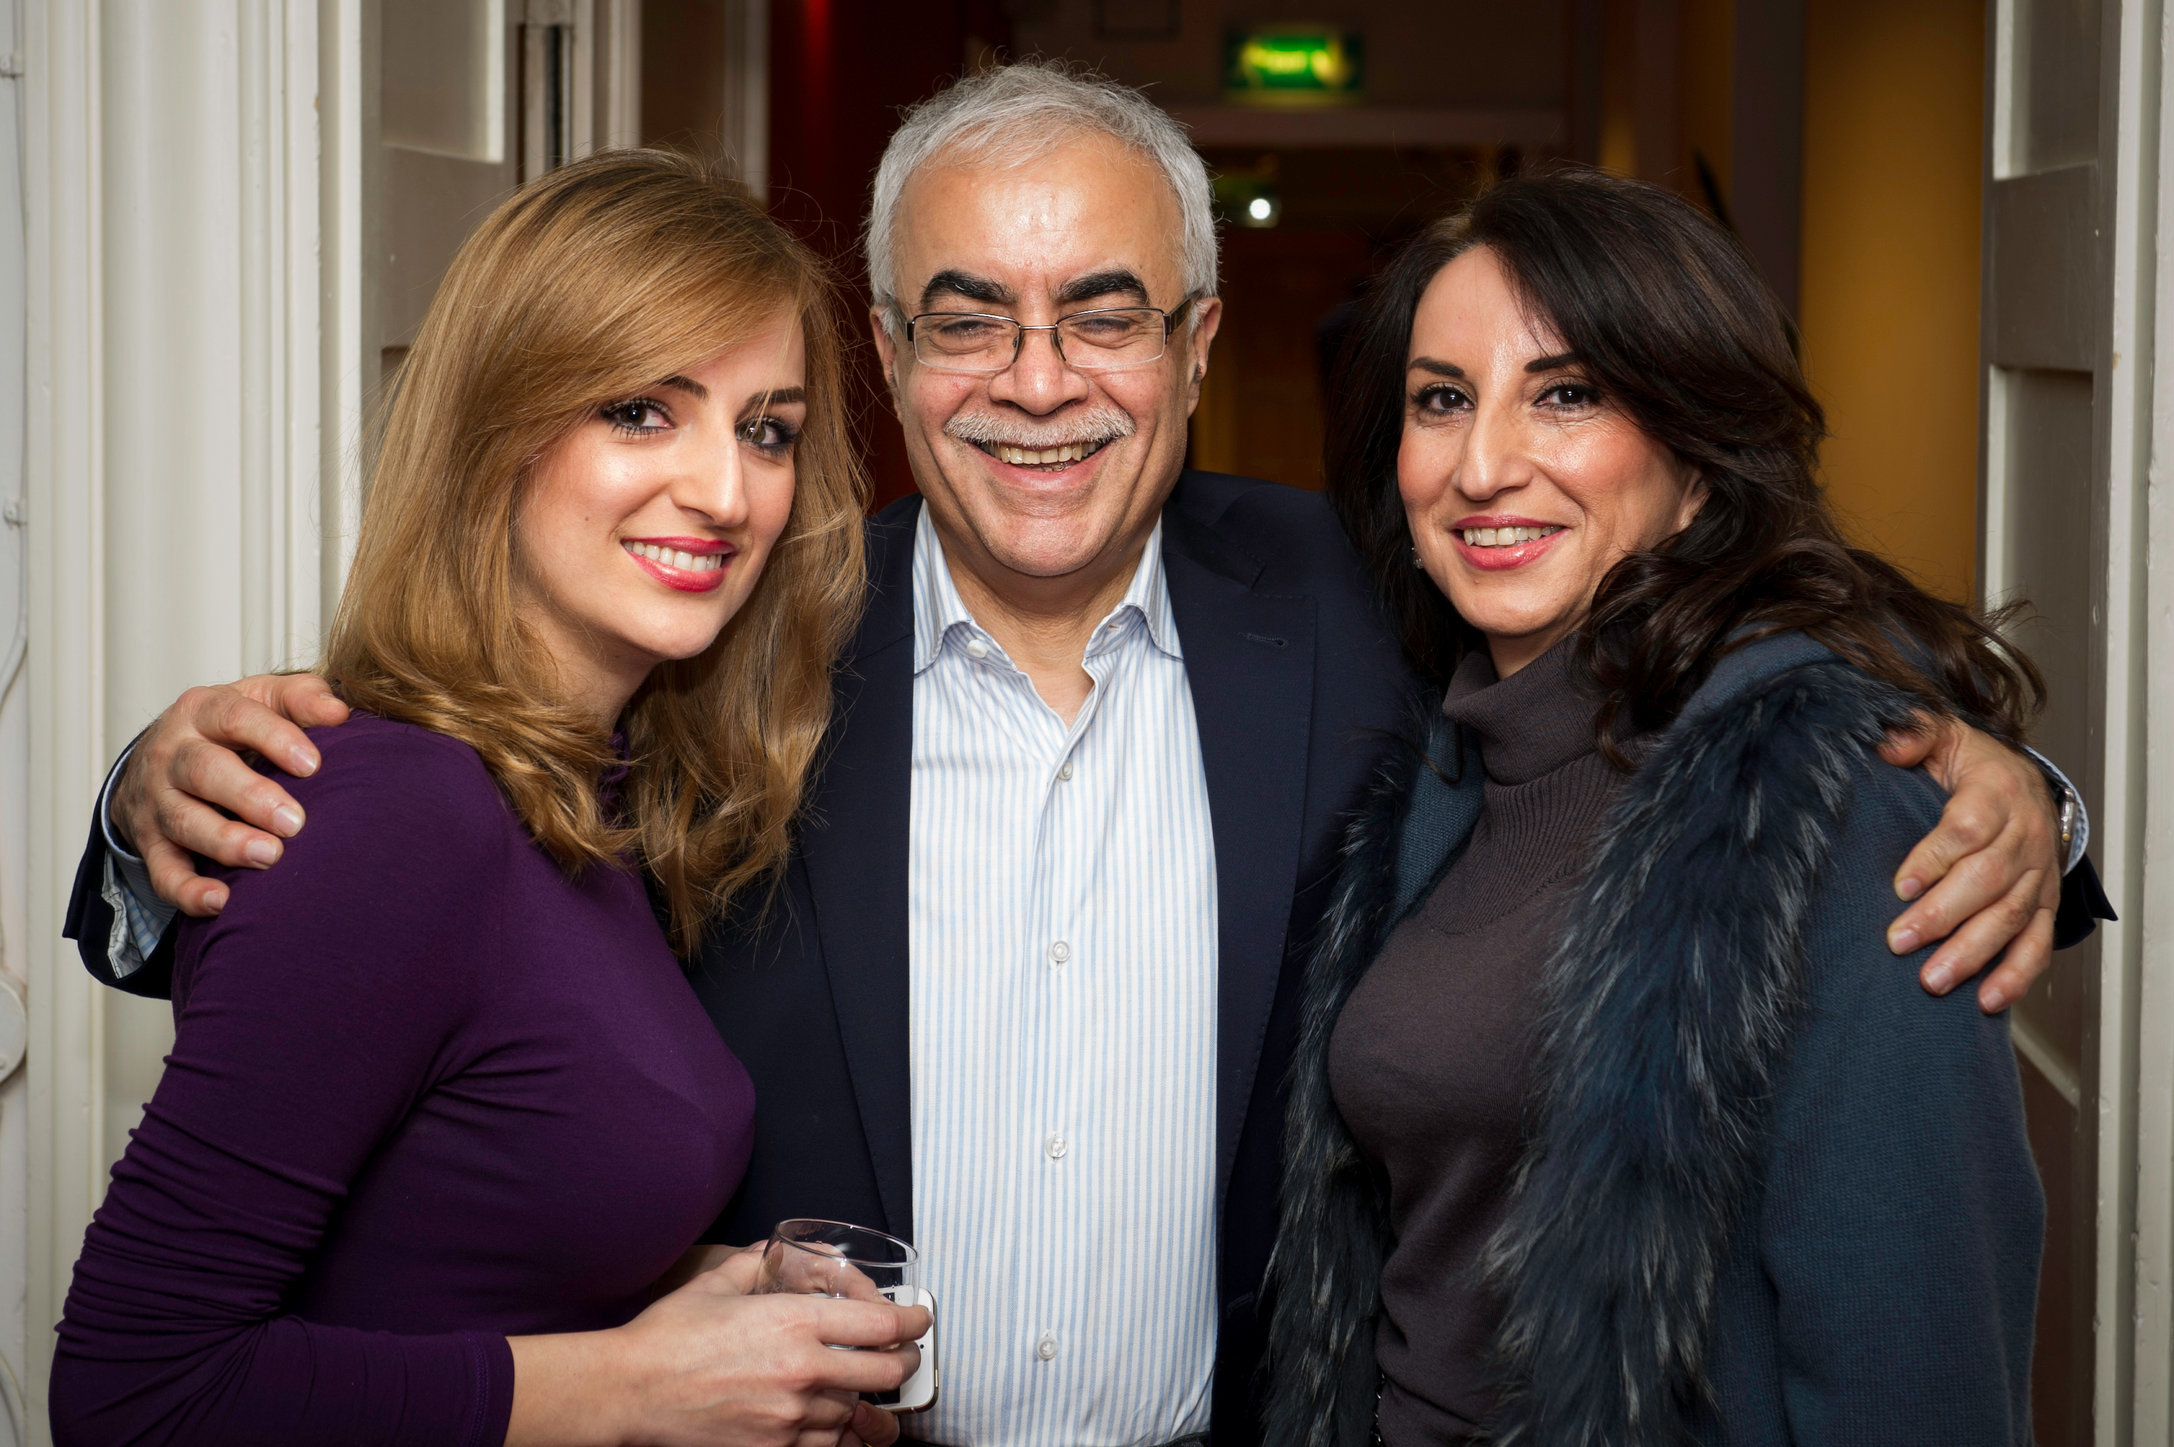 Ludovic_Robert_Photographer_Aneveningwith_Shohreh_Aghdashloo_November_2013-20131128-0019.jpg